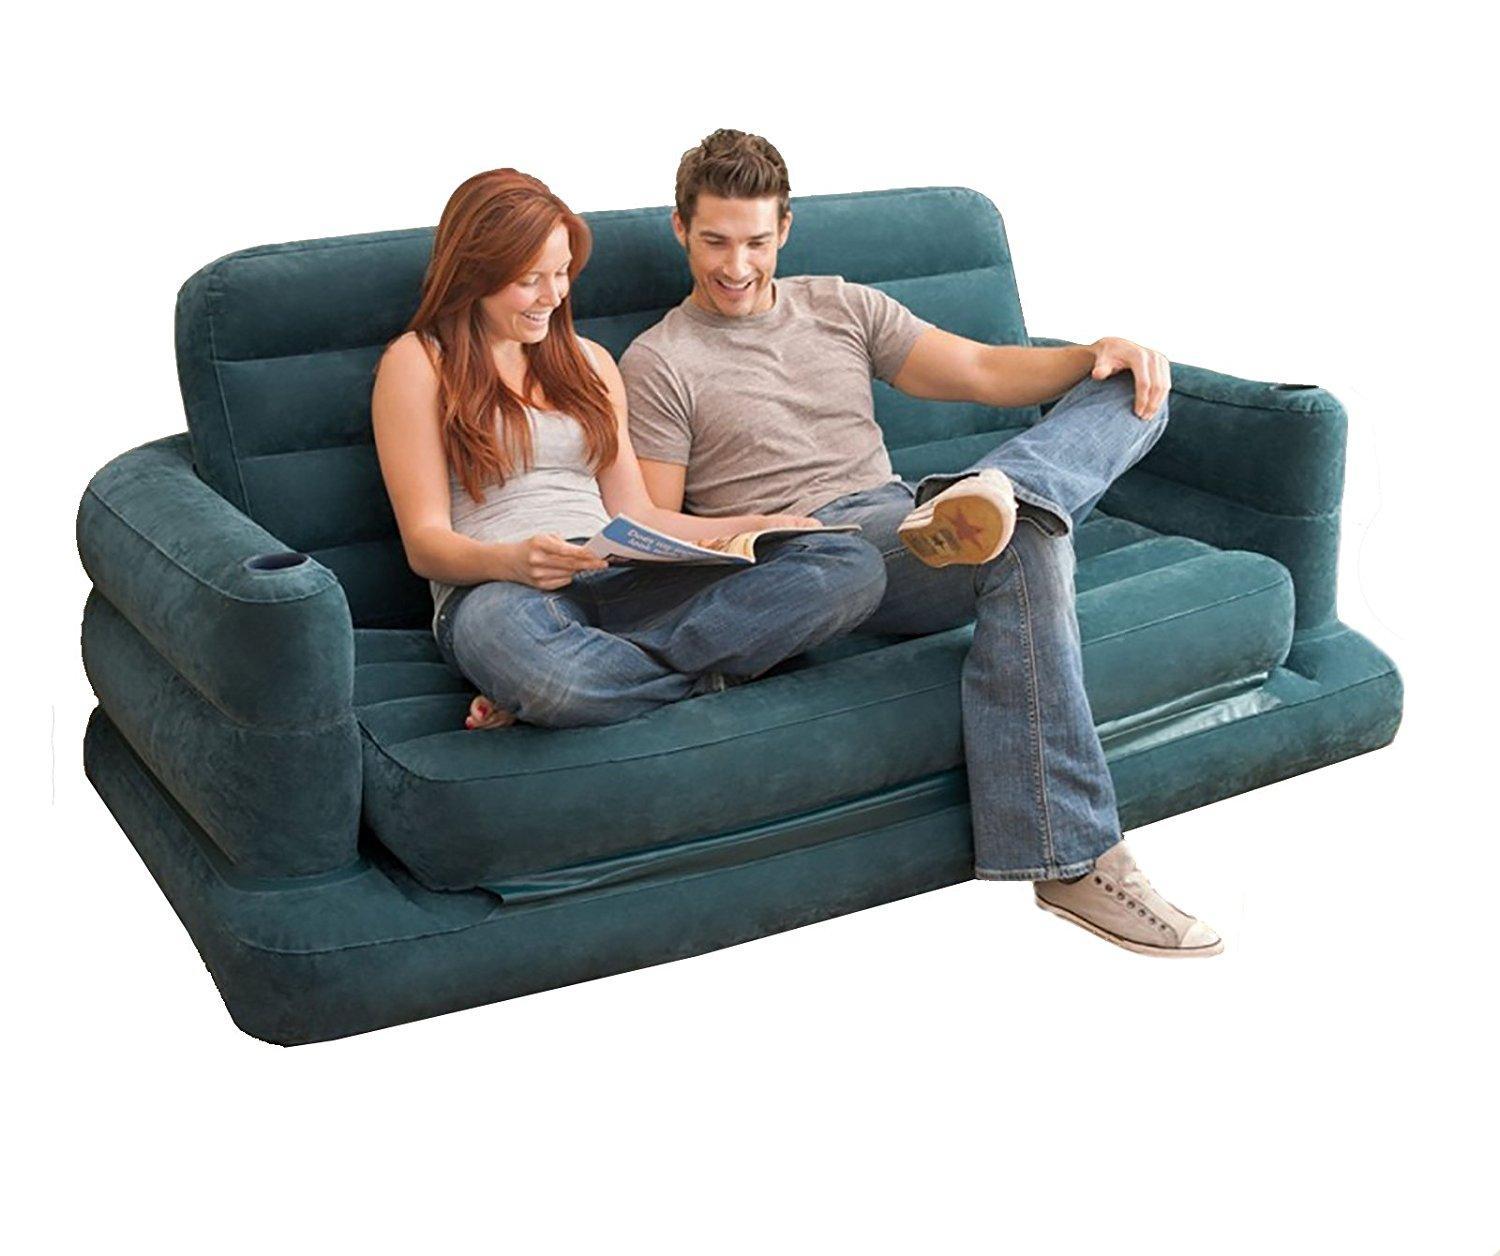 Intex Inflatable Sofa With Ideas Image 39149 | Kengire Intended For Intex Inflatable Sofas (View 13 of 20)